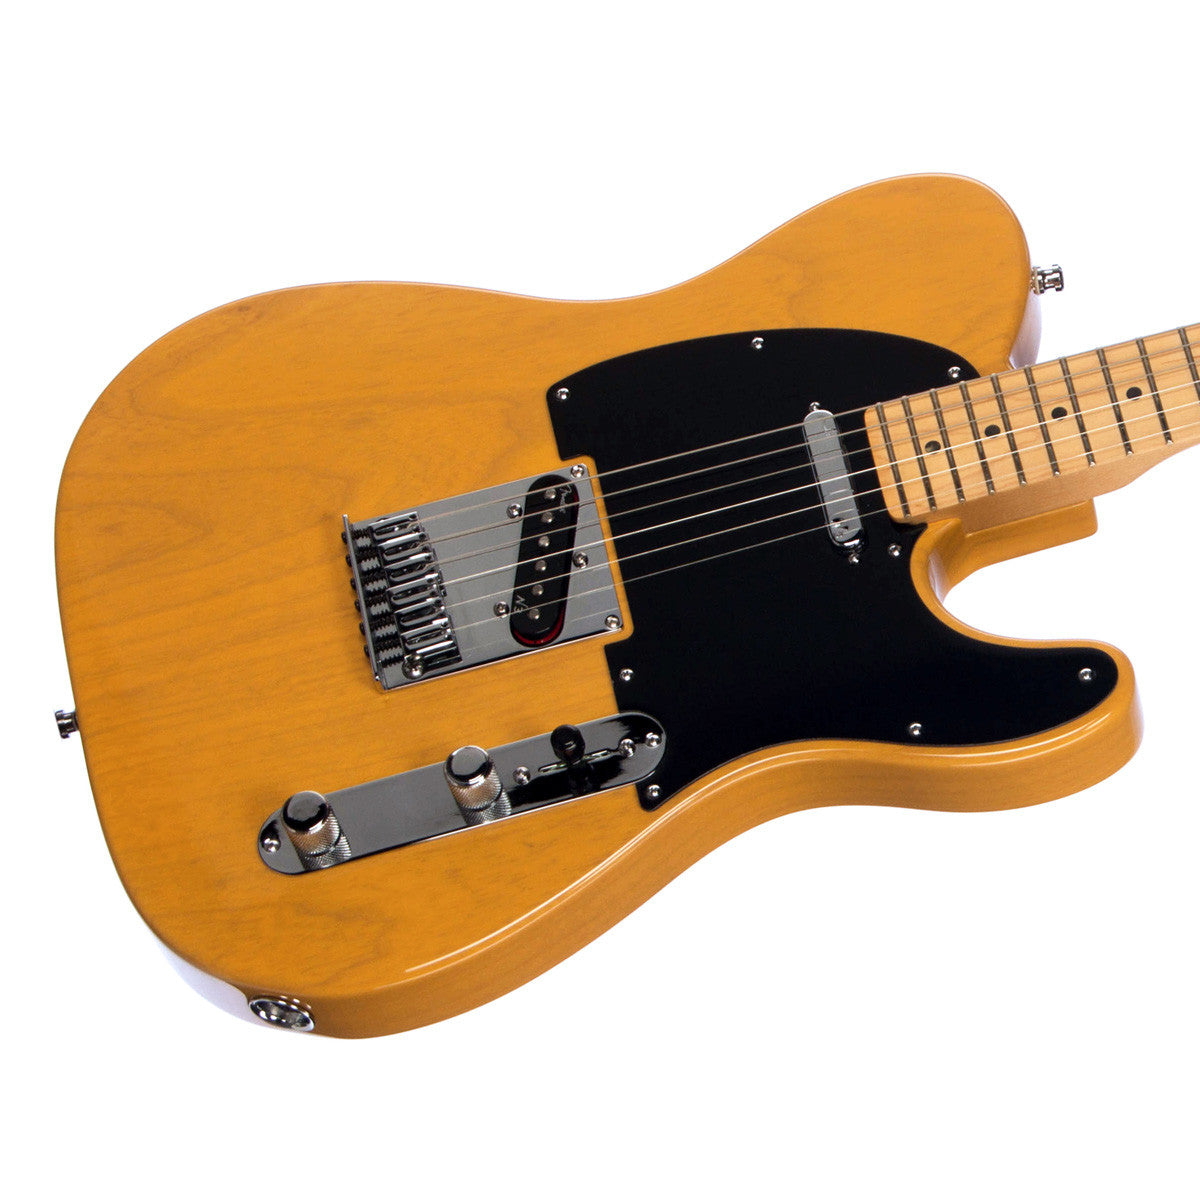 fender_american_deluxe_telecaster_am_dlx_tele_butterscotch_blonde_maple_neck_electric_guitar_0119502750_frontbody american deluxe telecaster wiring diagrams dolgular com fender american deluxe telecaster wiring diagram at fashall.co